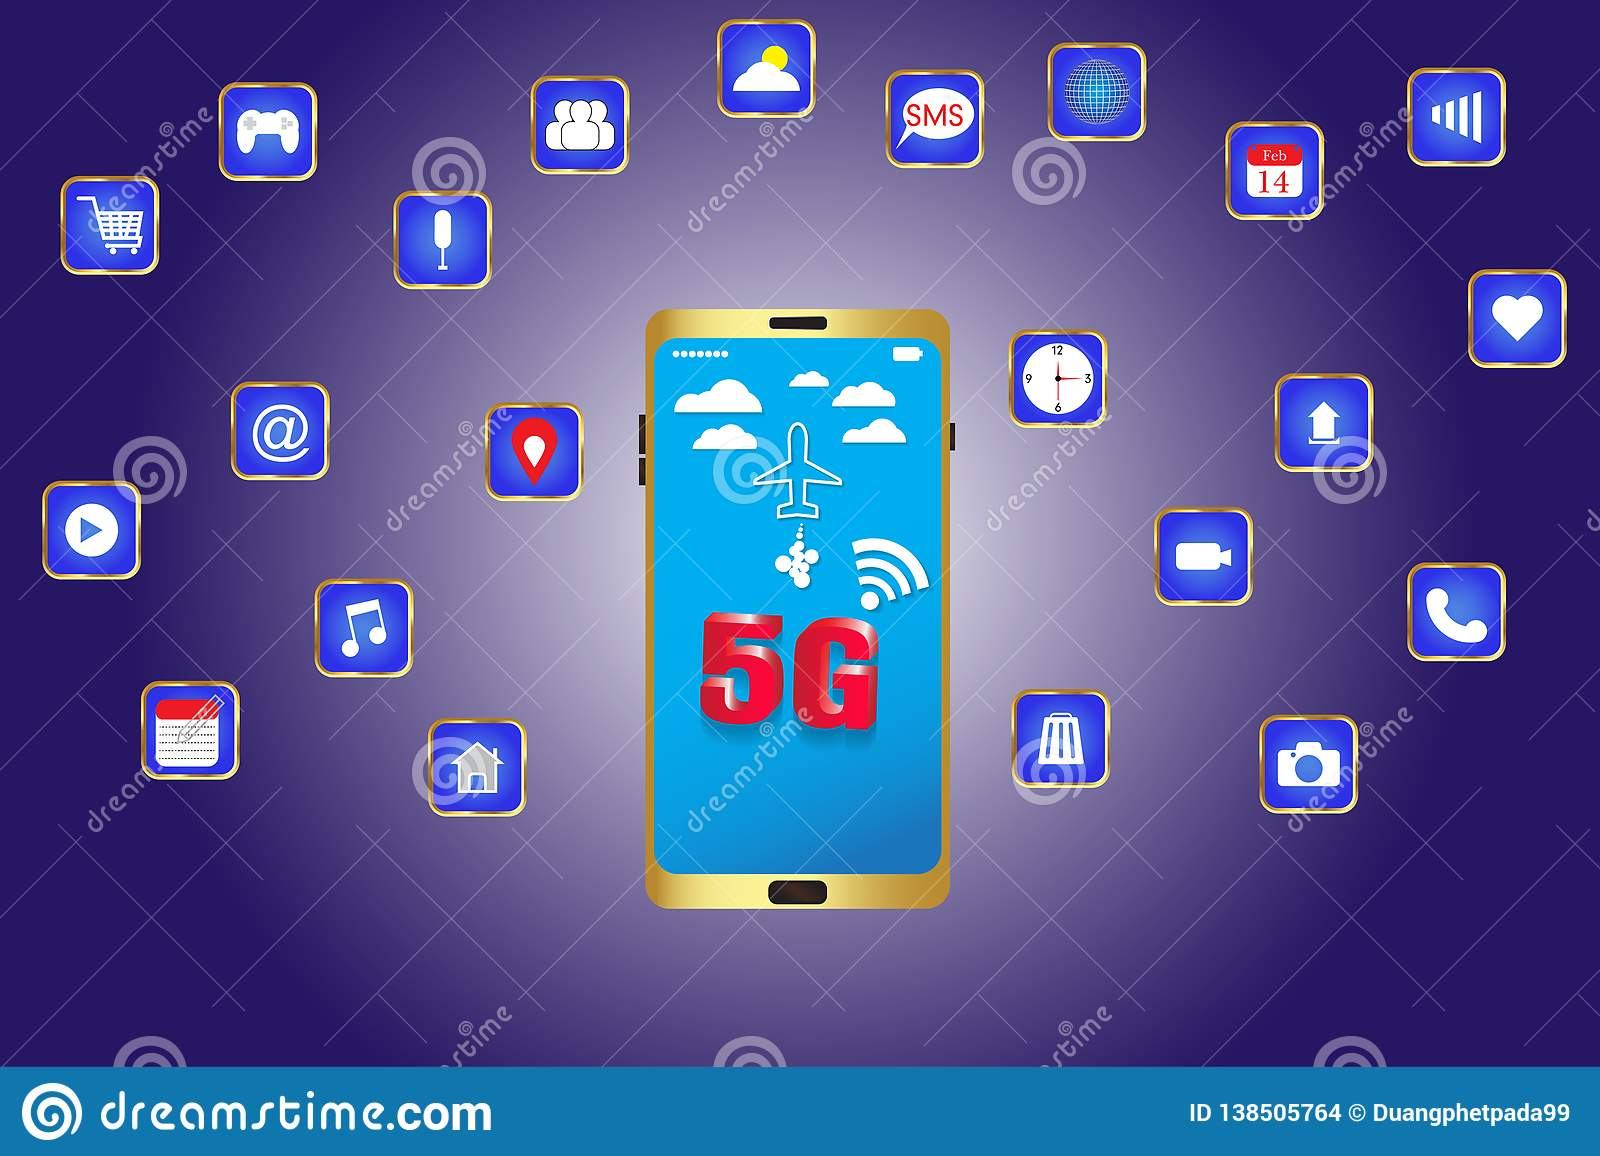 Smart phone with 5g high speed wifi in the future